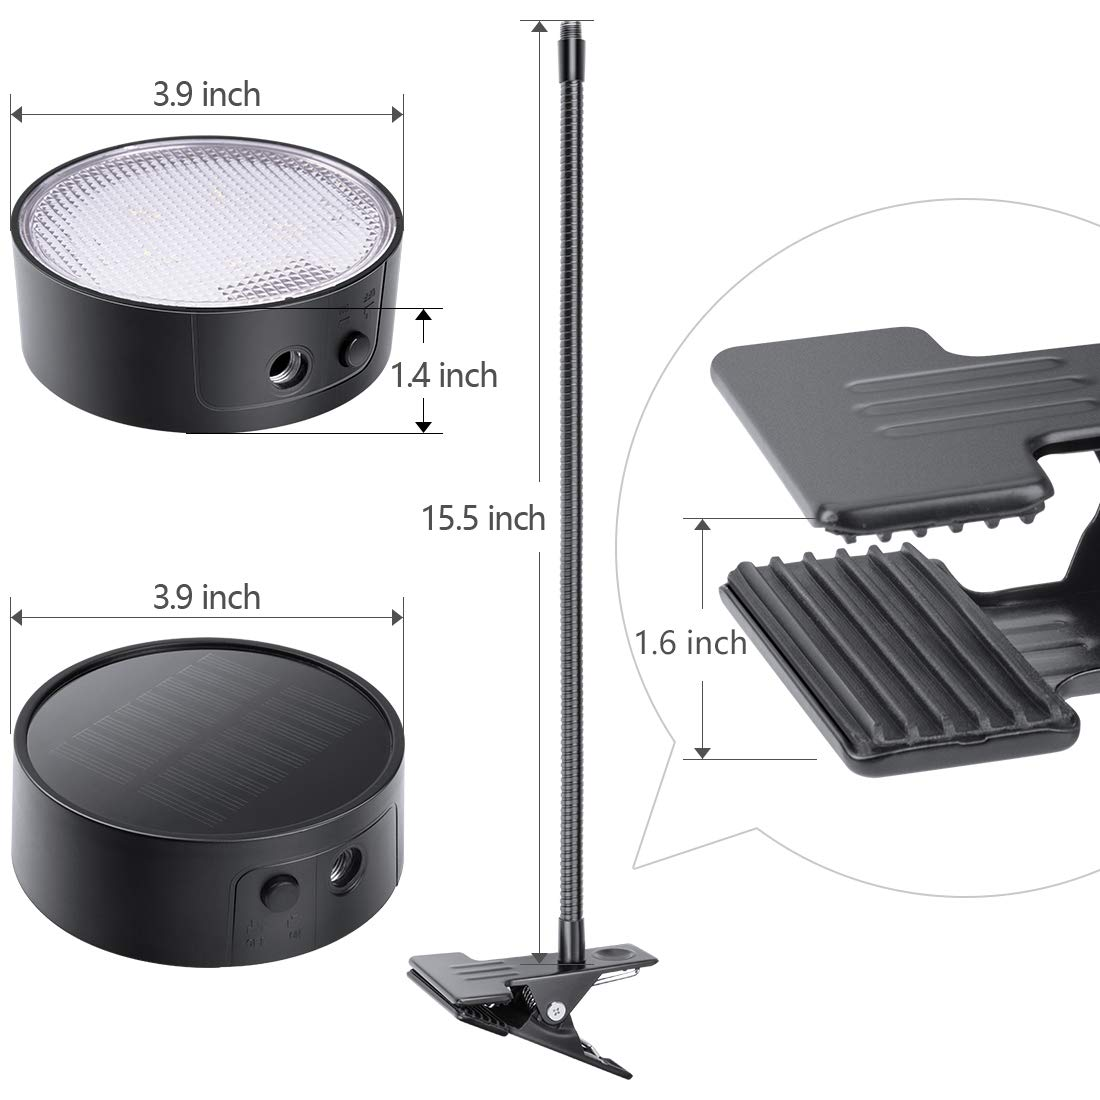 LeiDrail Grill Light LED Solar BBQ Lights Super Bright Wide-Angle Barbecue Lamp Flexible Gooseneck Outdoor Waterproof Anti-Shedding Clip for Charcoal Electric Desk Work Bench by LeiDrail (Image #8)